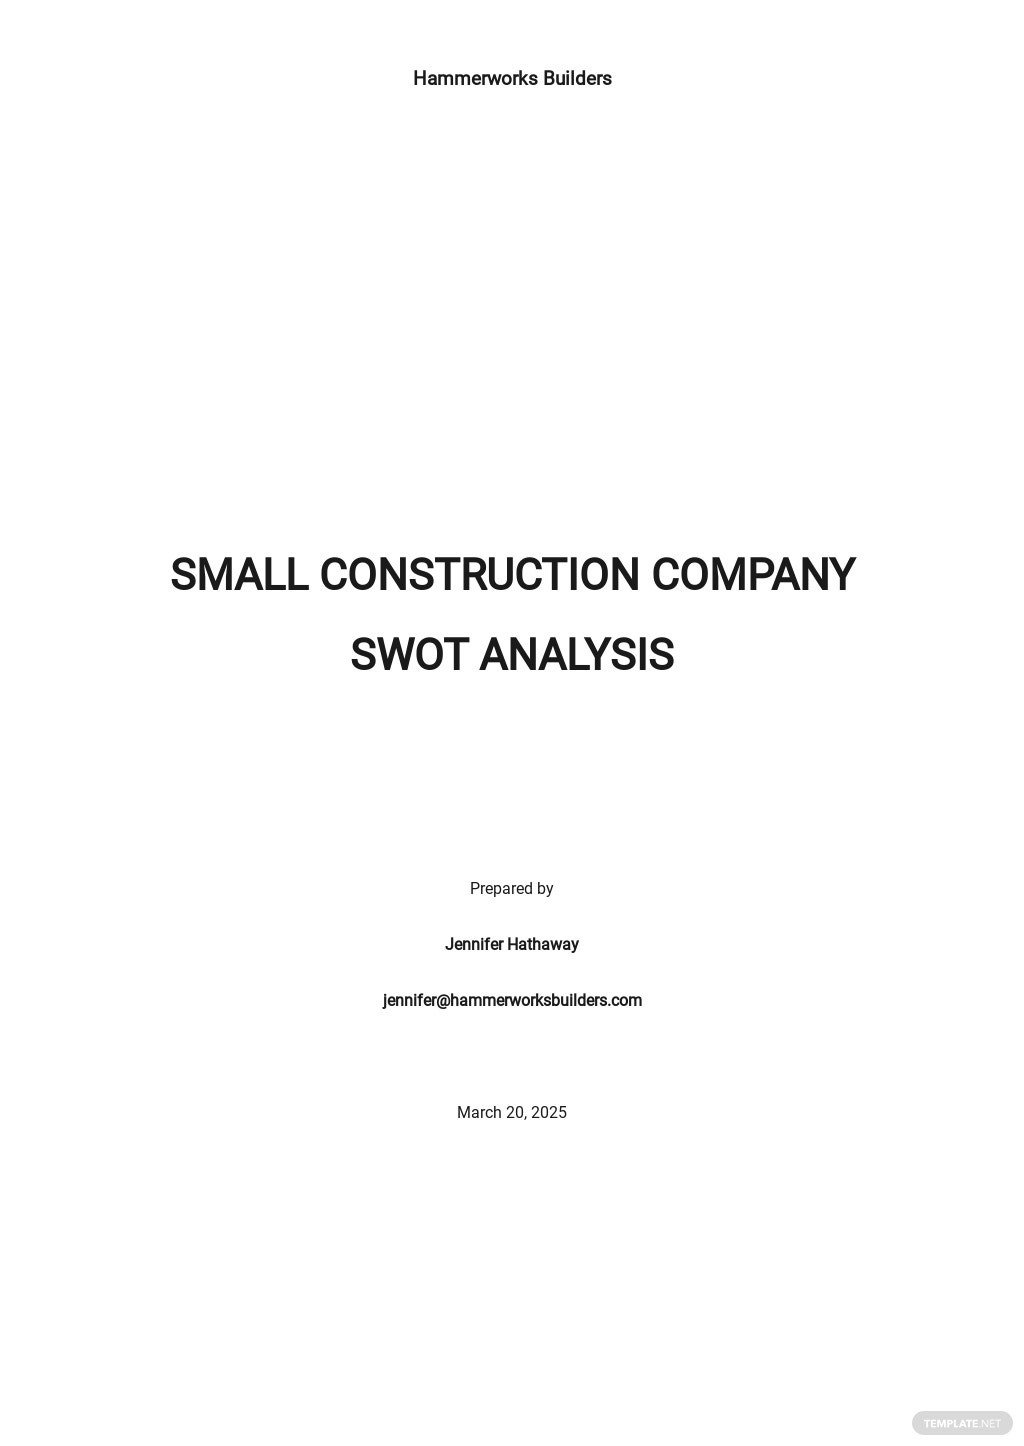 Small Construction Company SWOT Analysis Template